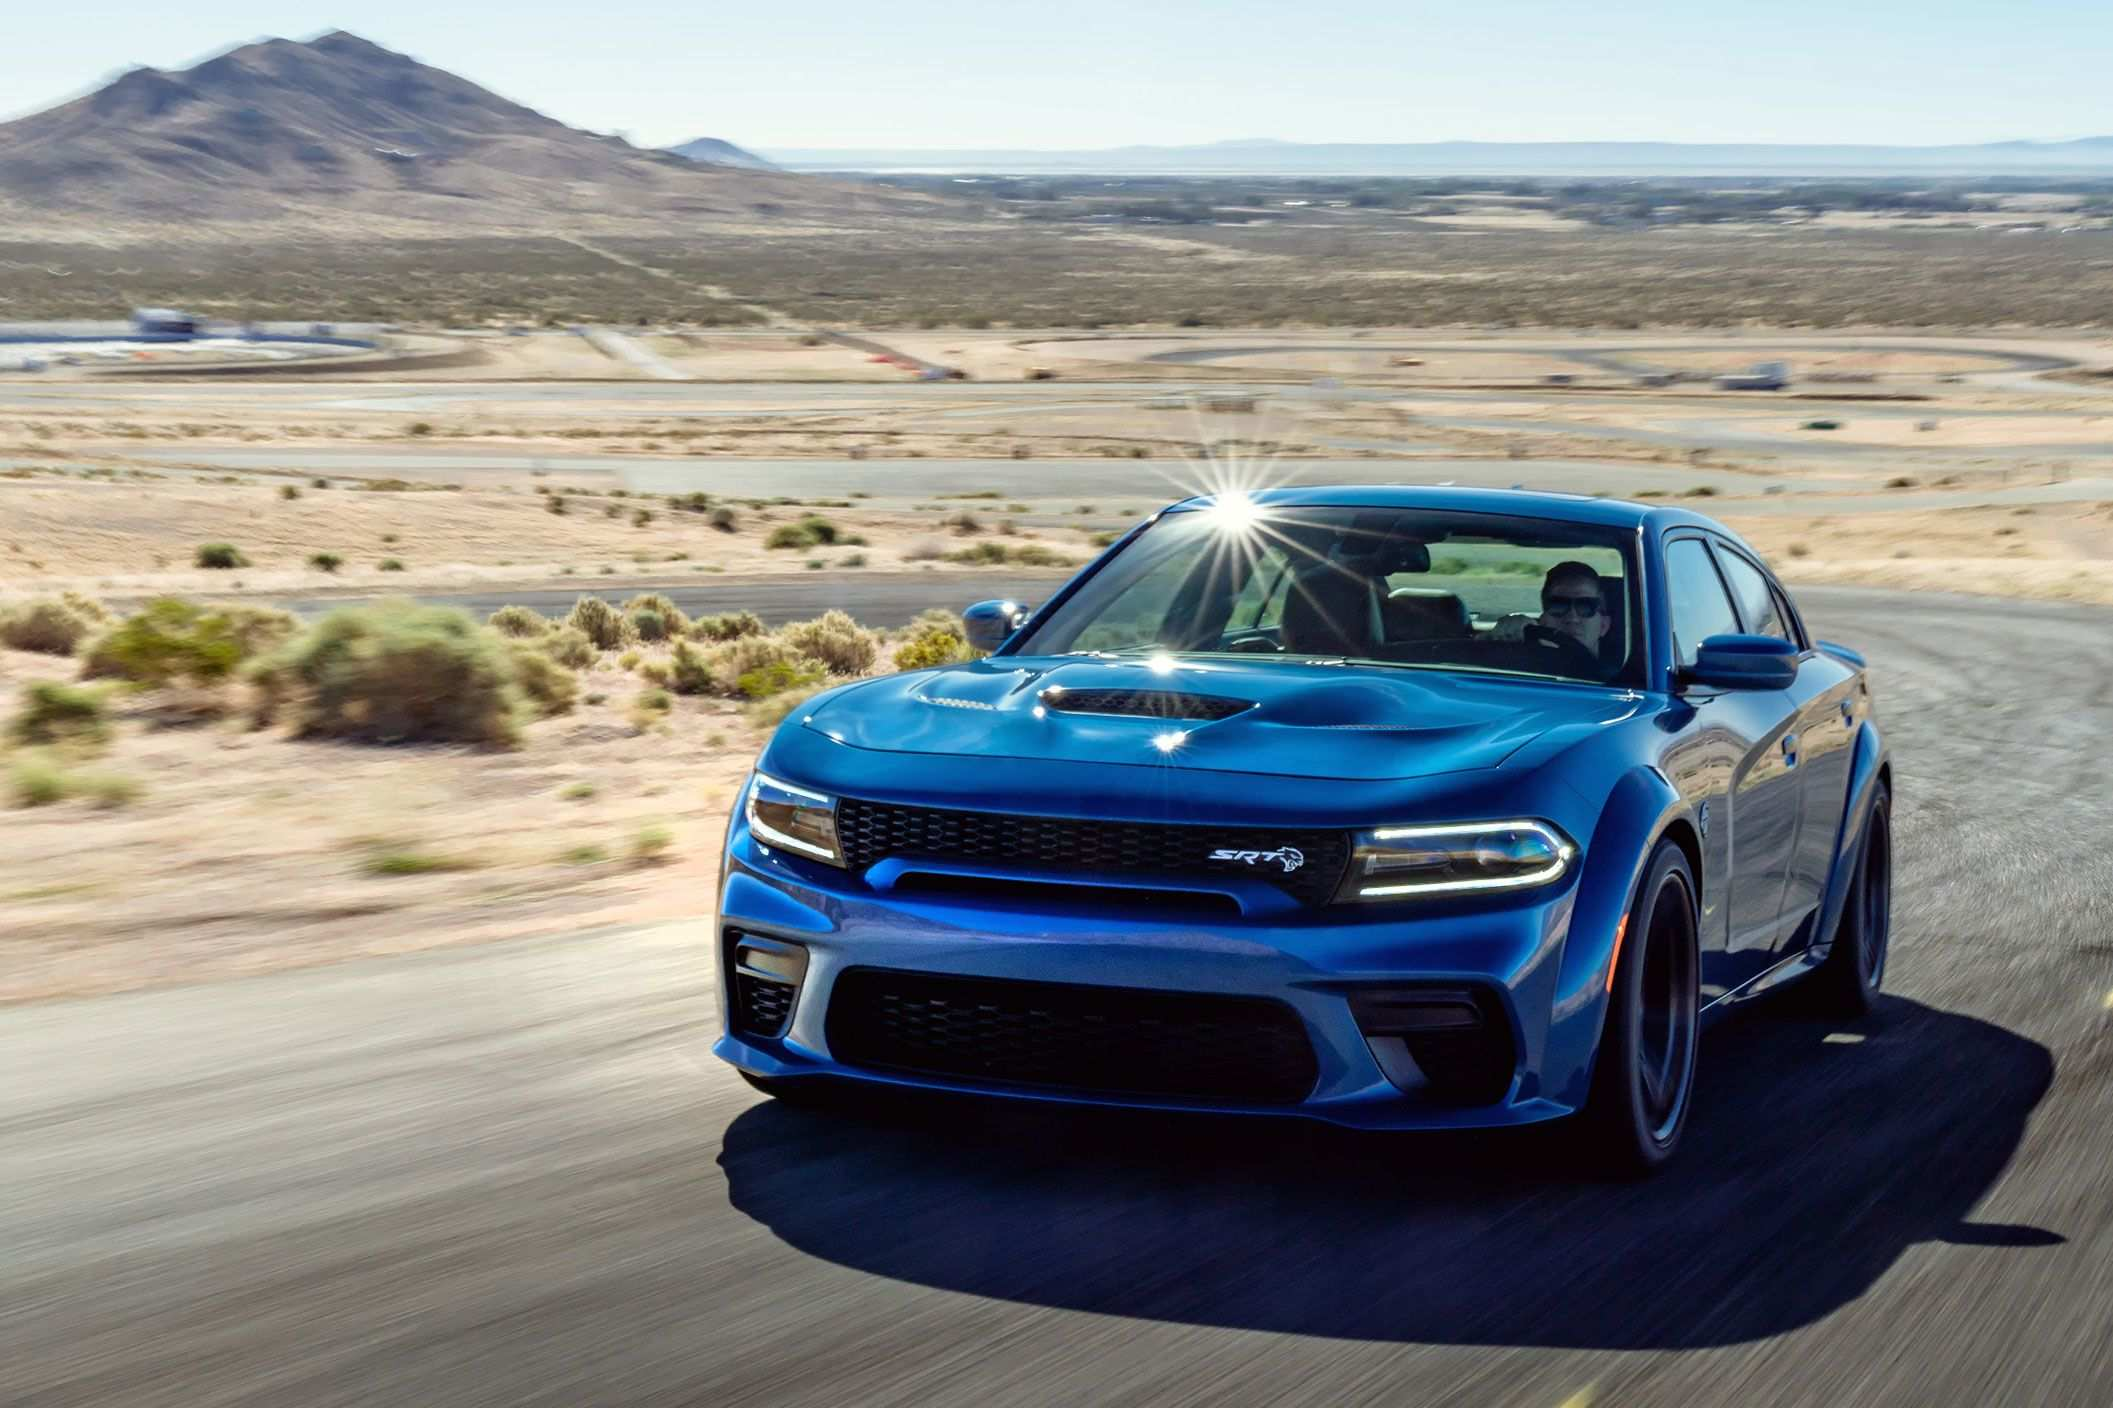 49 New Dodge Srt 2020 History with Dodge Srt 2020